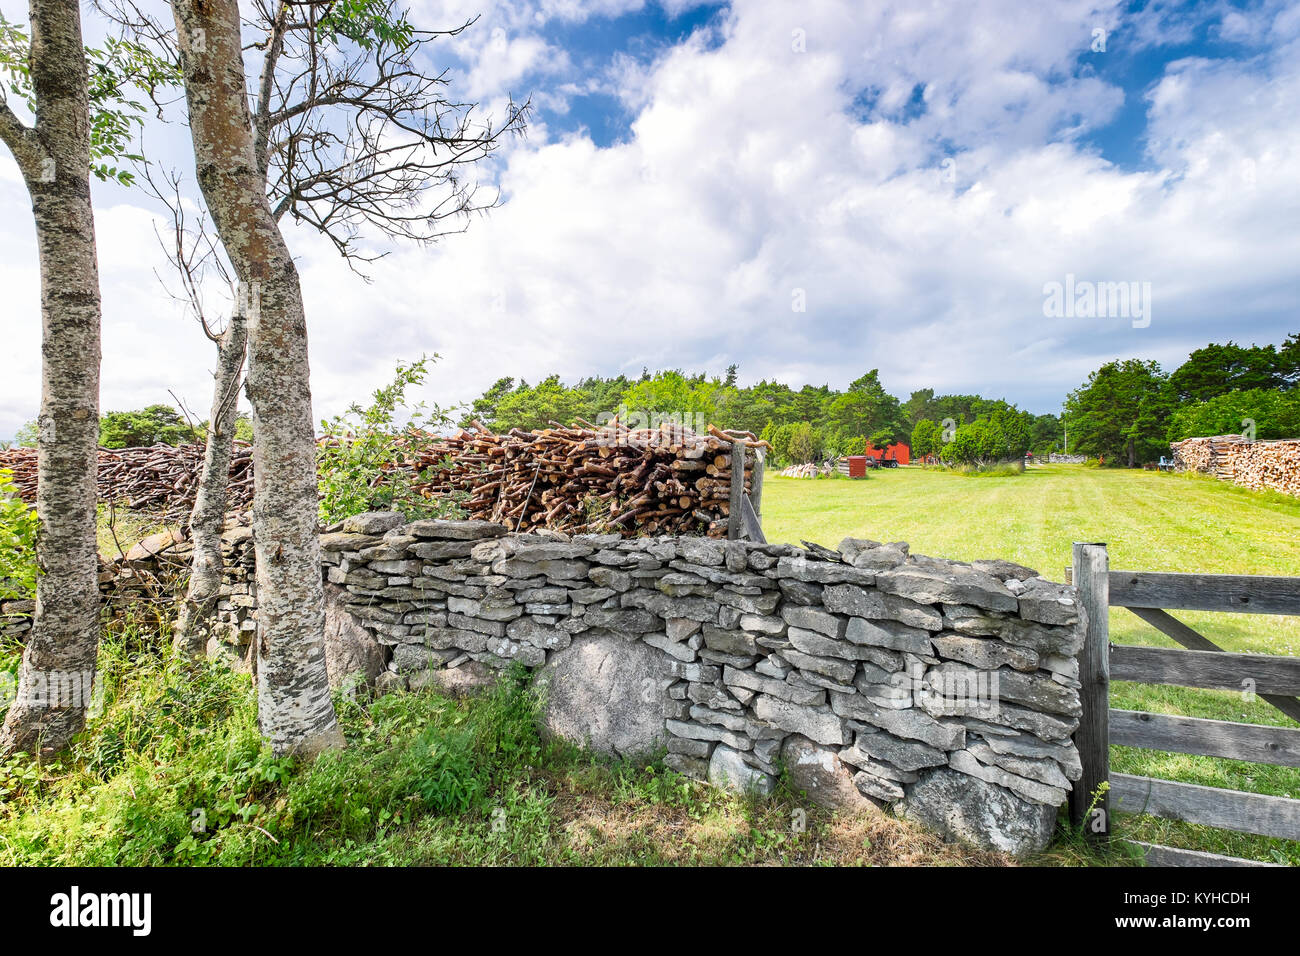 Swedish country farm landscape. Old stone walls, green fields, wooden gate and birch trees - Stock Image